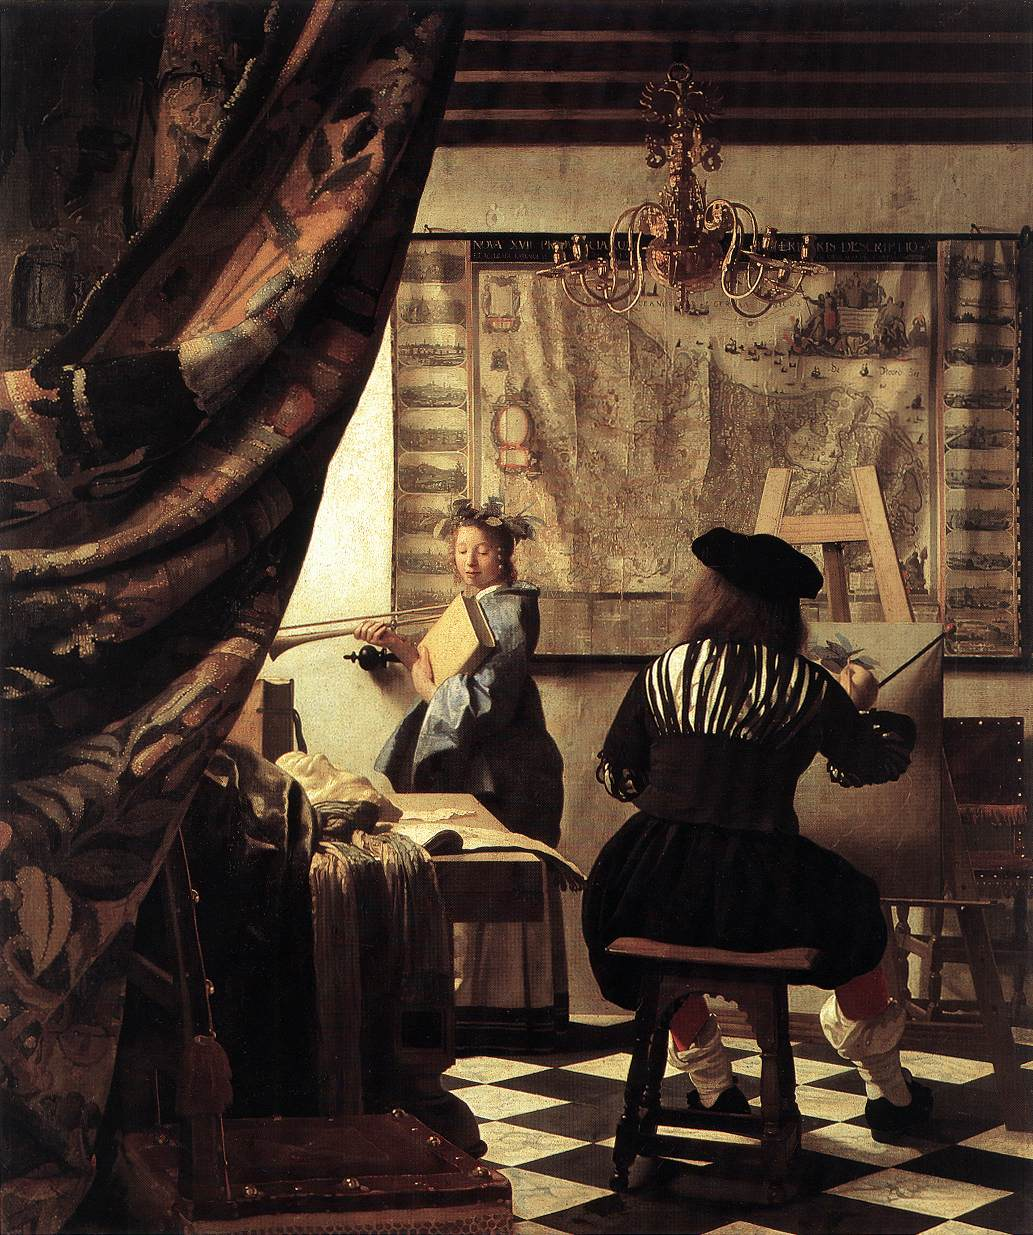 Jan Vermeer Van Delft, The Artist's Studio, 1665